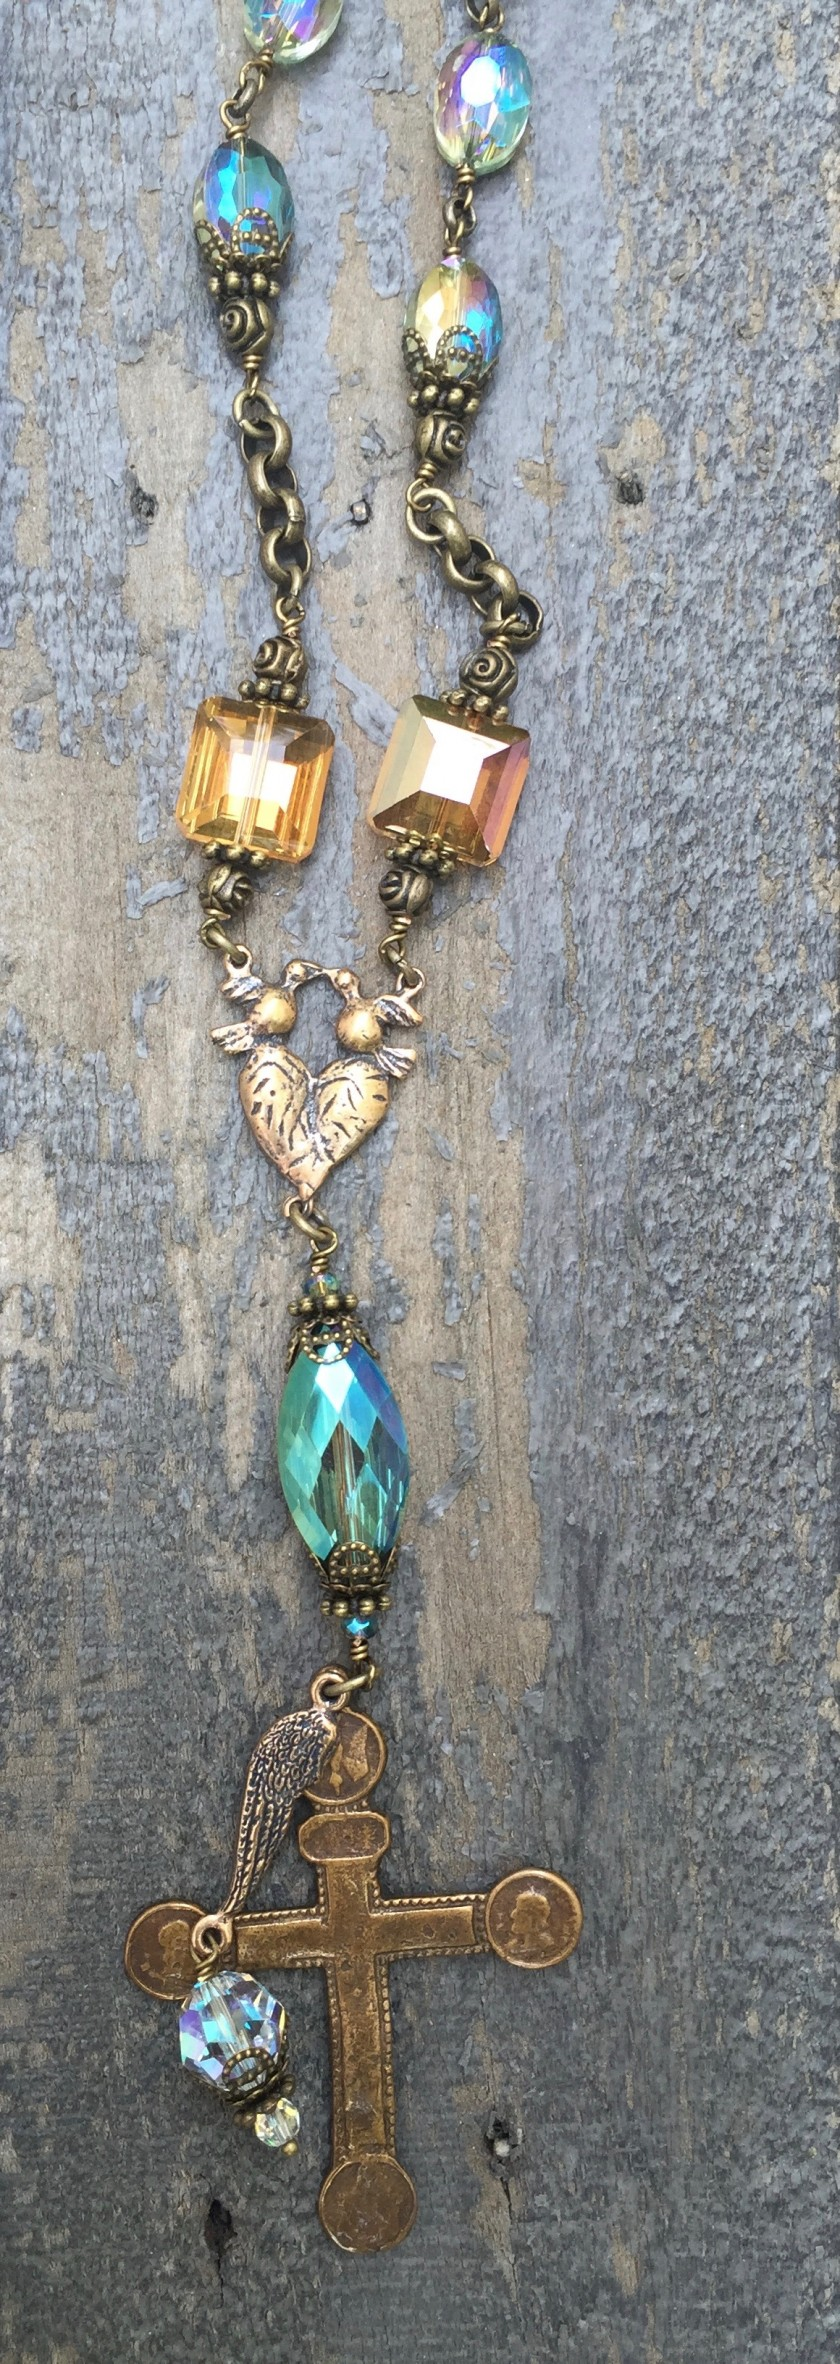 Apricot and Aqua with Clear Crystal Necklace – 12mm